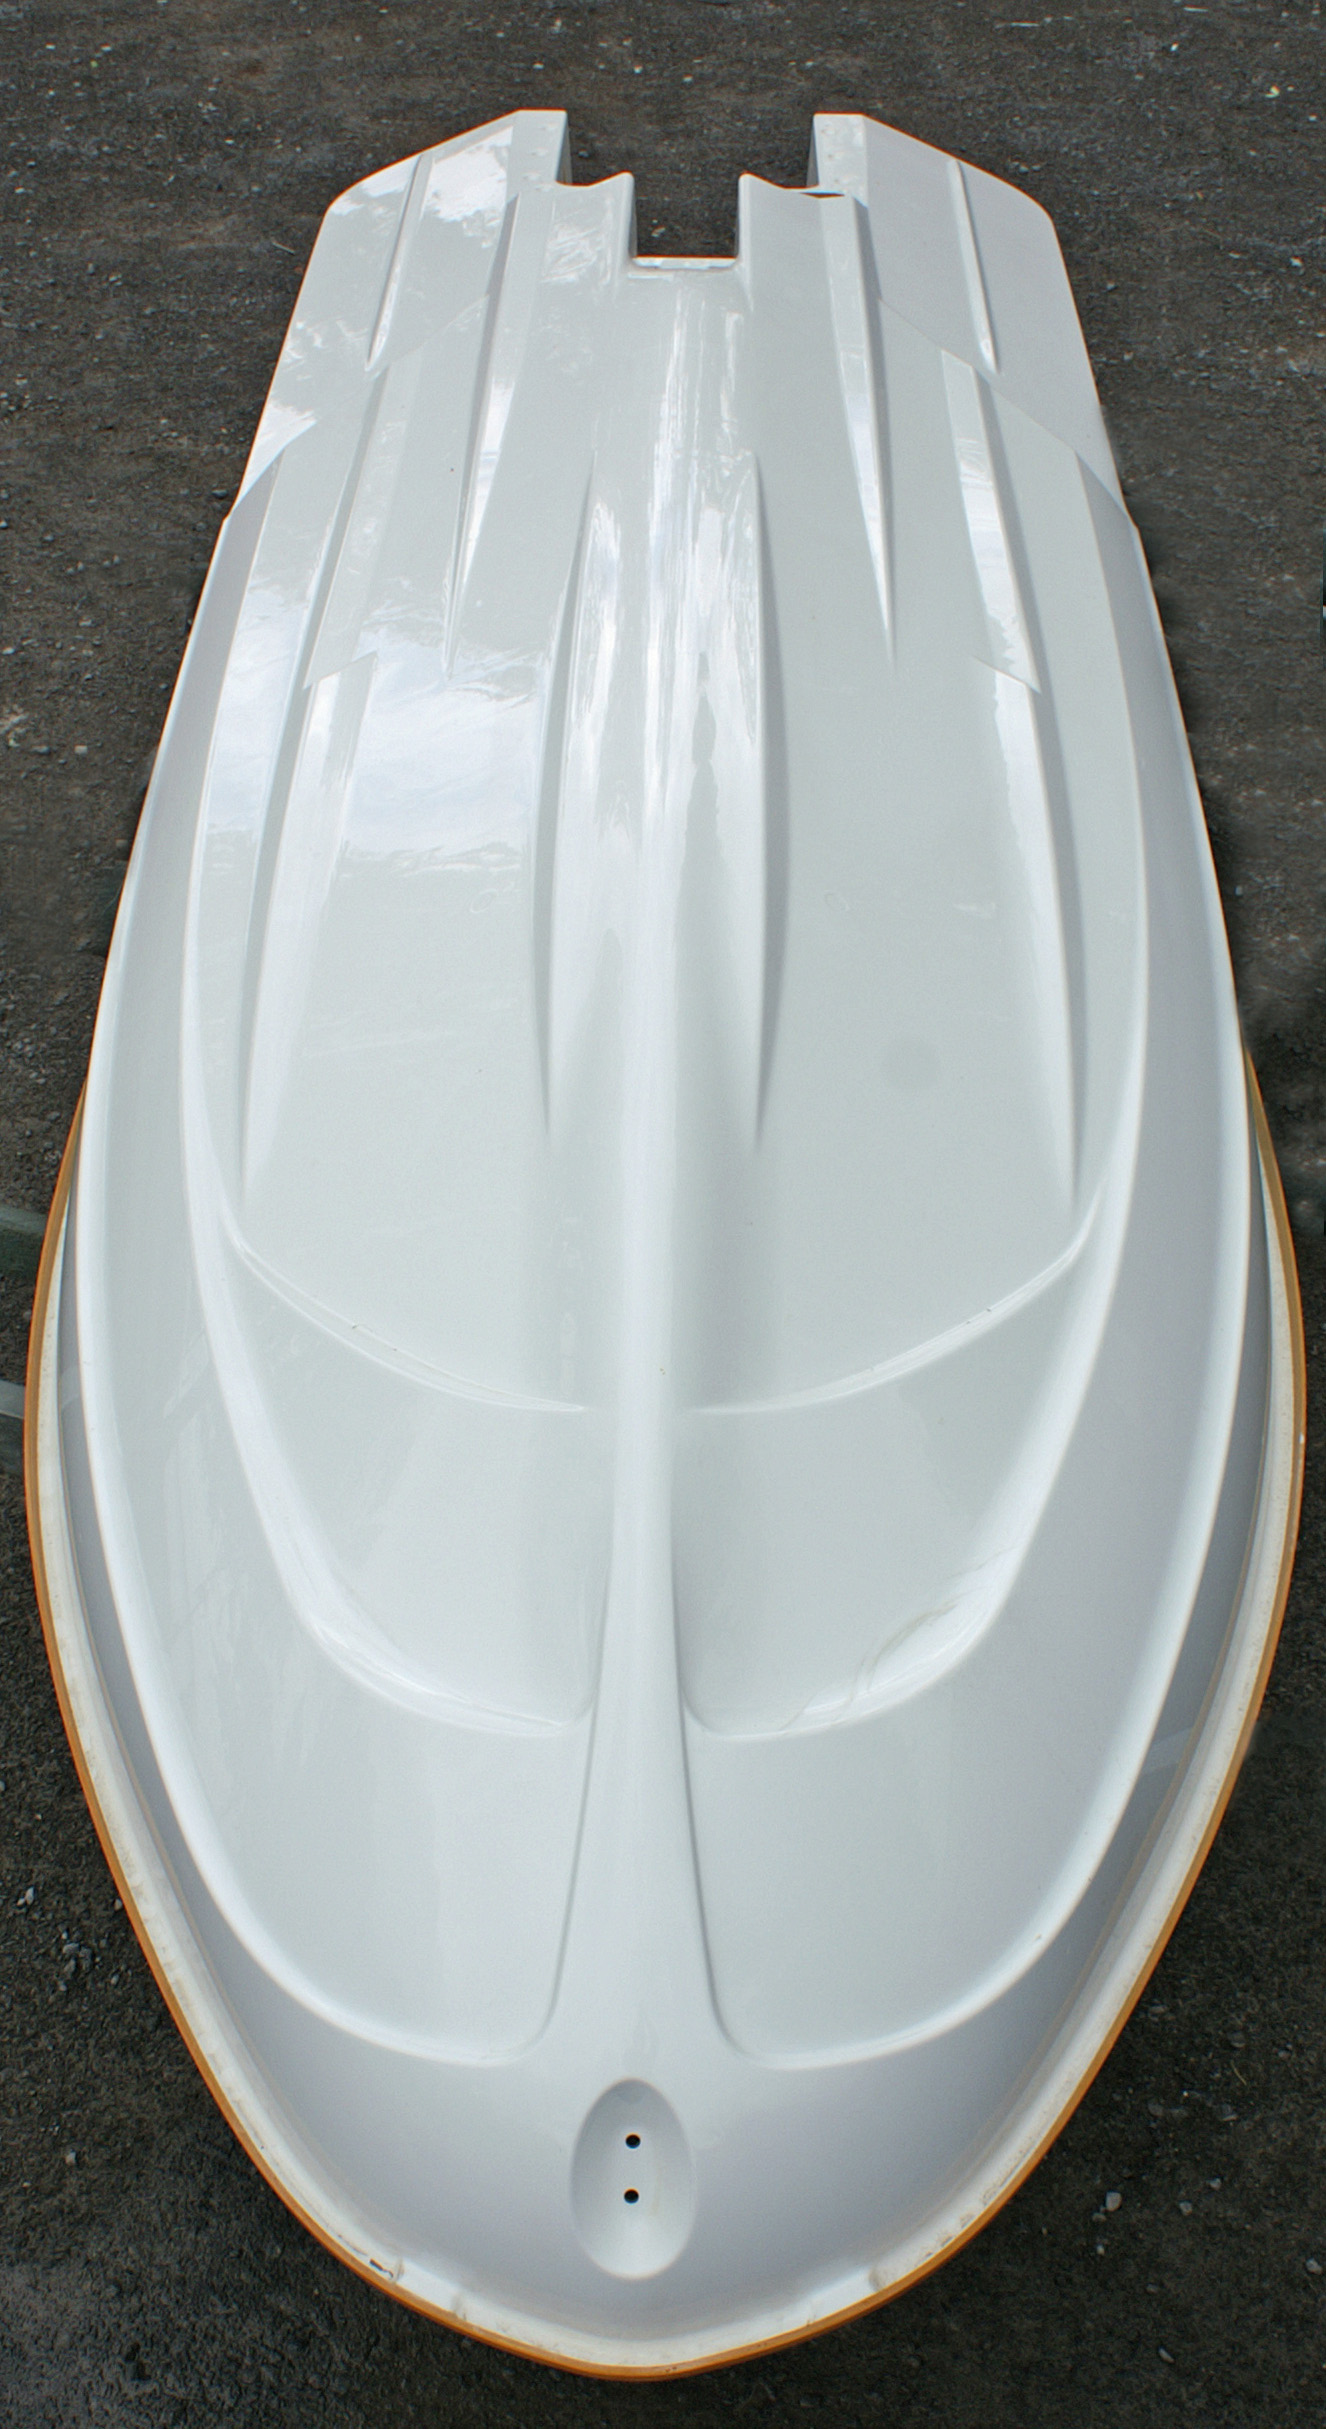 DID YOU KNOW? Sea-Doo has Three Hull Designs, Offering Something for ...